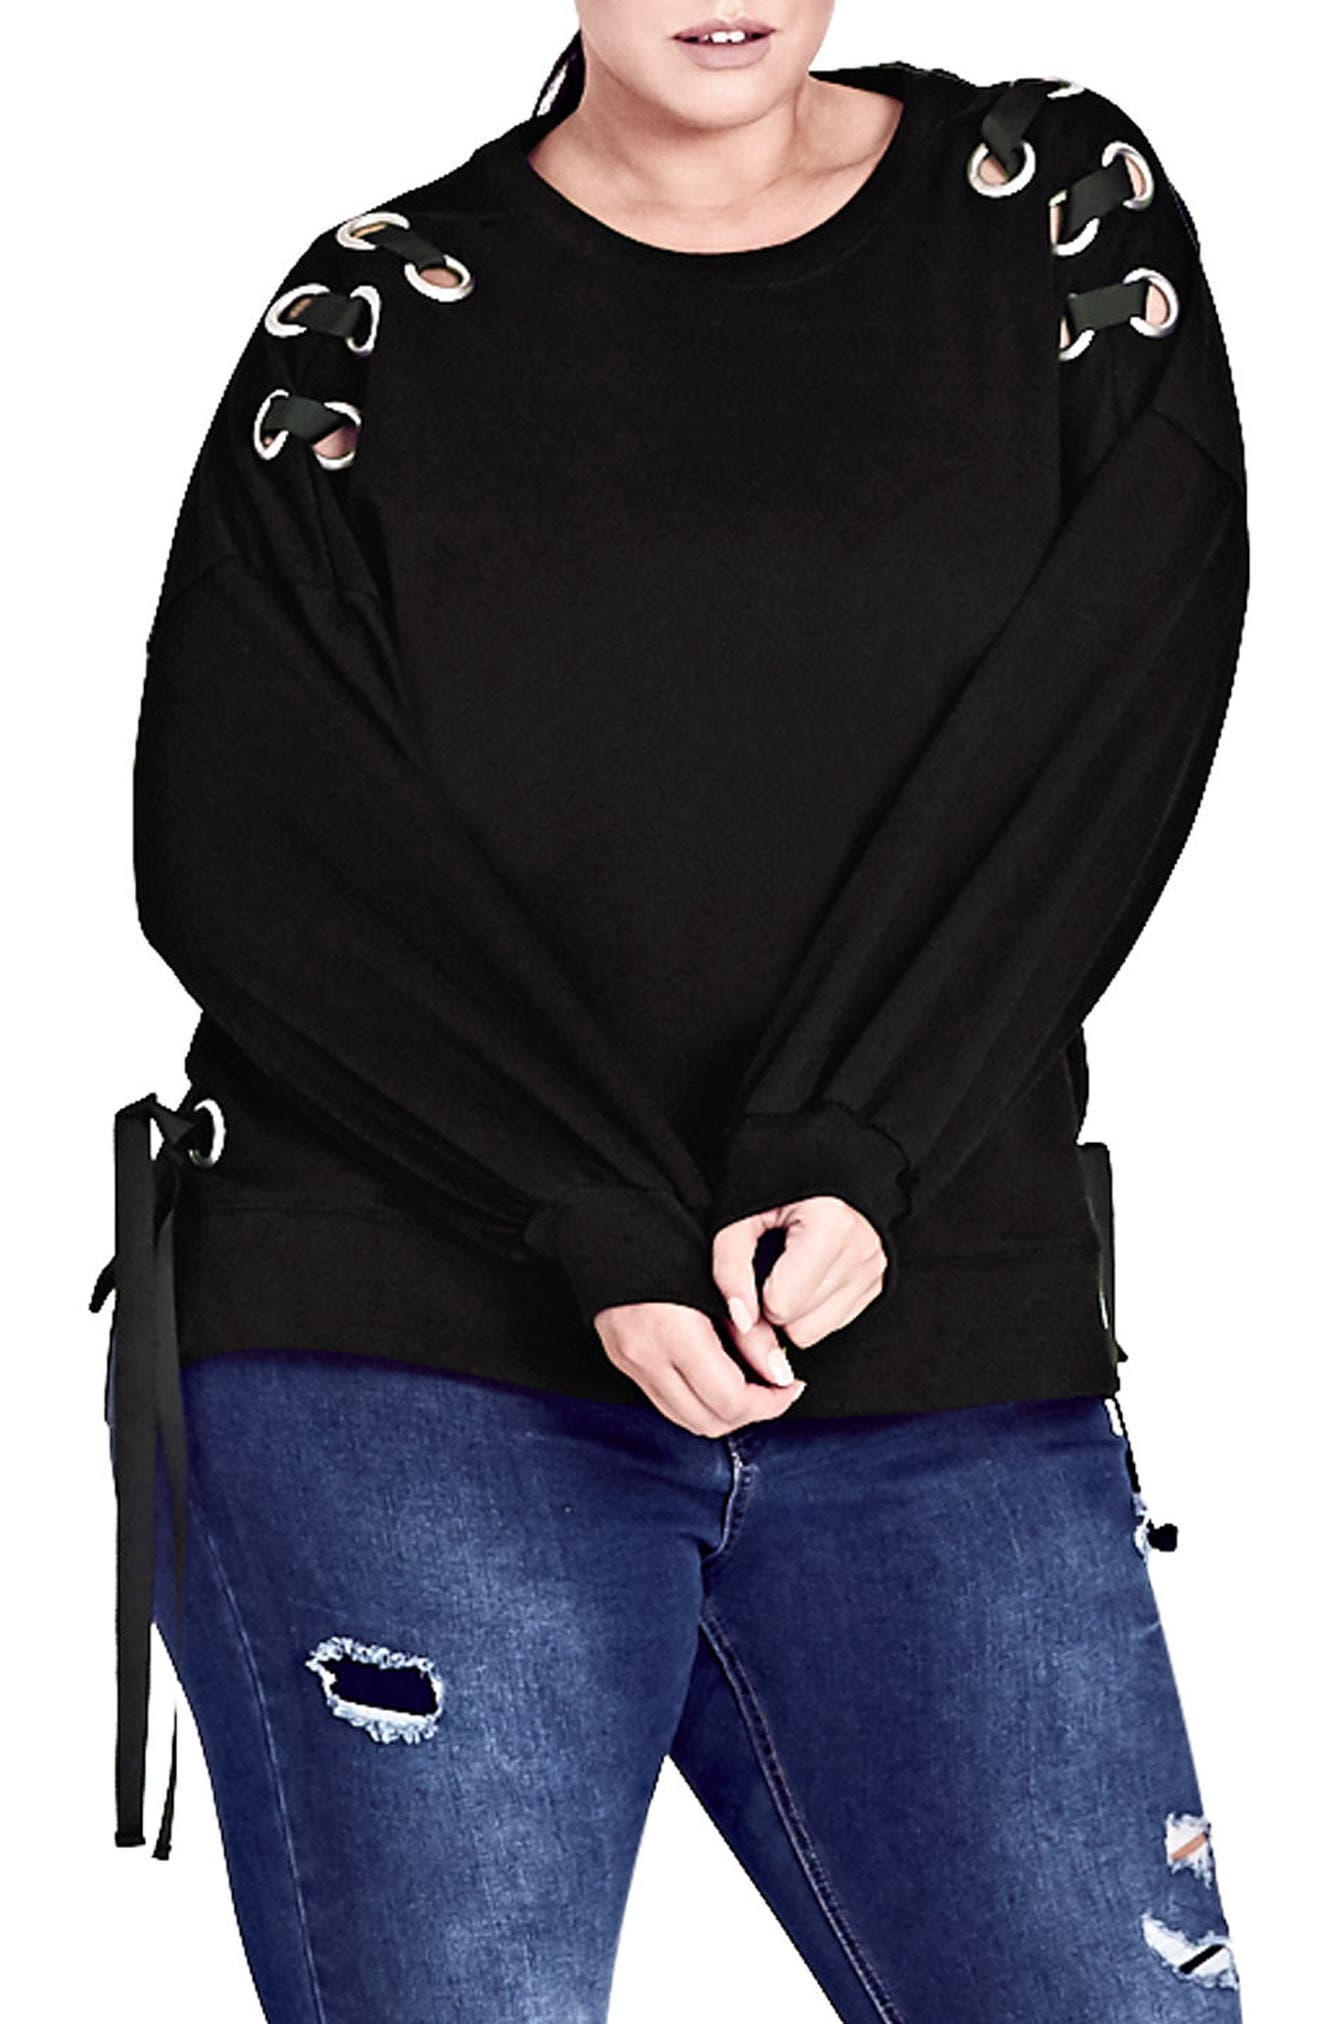 Ring Tie Stretch Cotton Top,                             Main thumbnail 1, color,                             Black